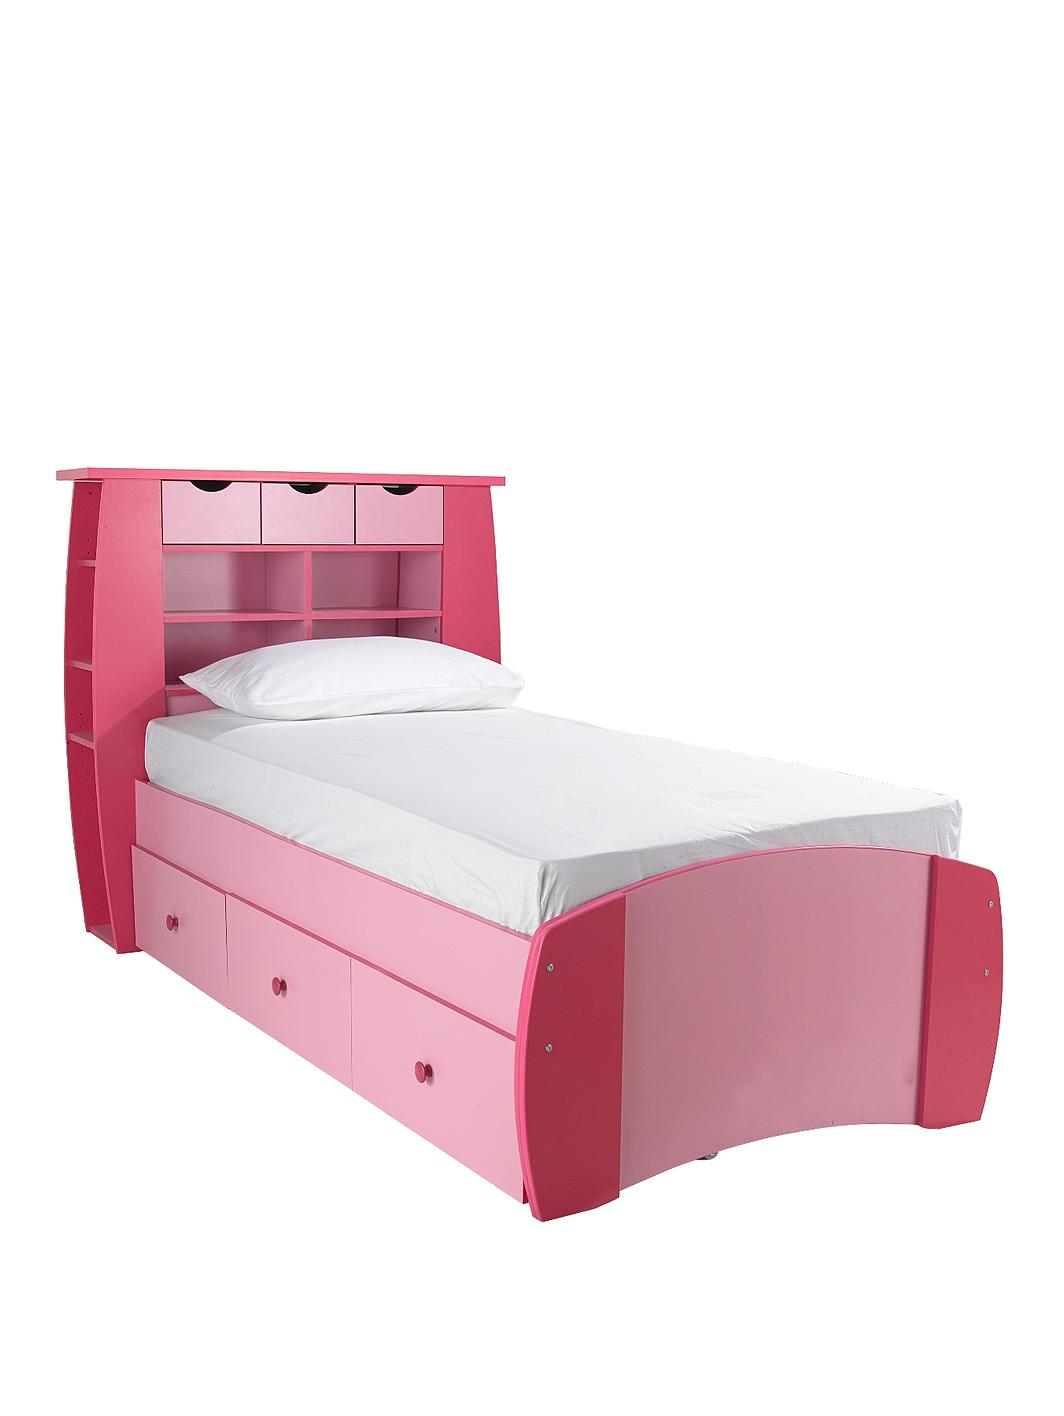 Kidspace Orlando Single Bed With Storage Shelves And Optional Mattress